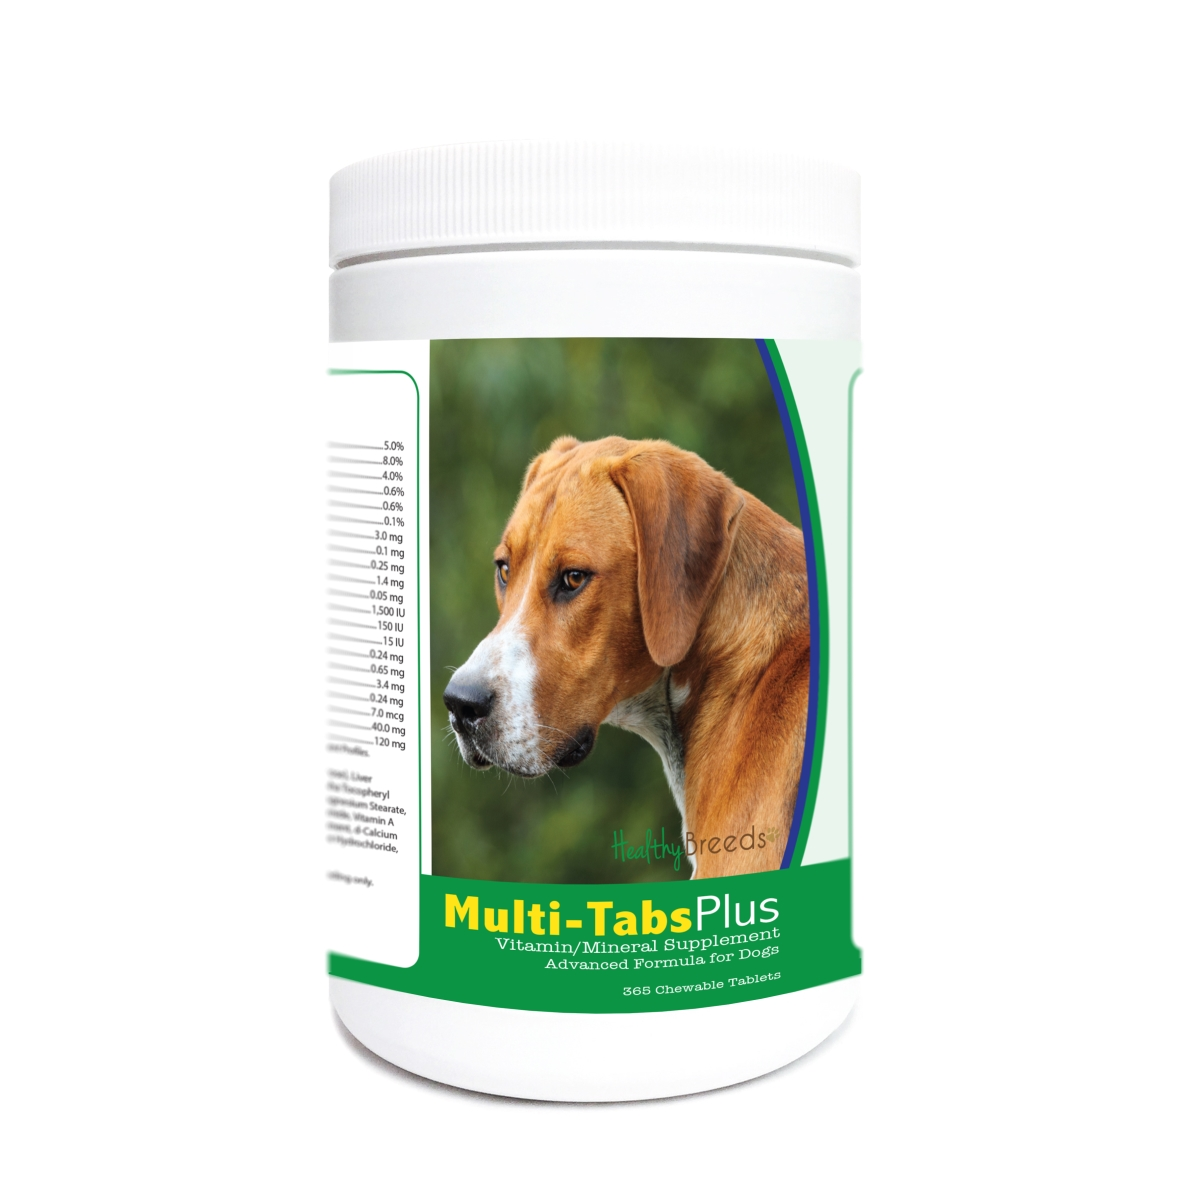 Healthy Breeds 840235180616 English Foxhound Multi-Tabs Plus Chewable Tablets - 365 Count